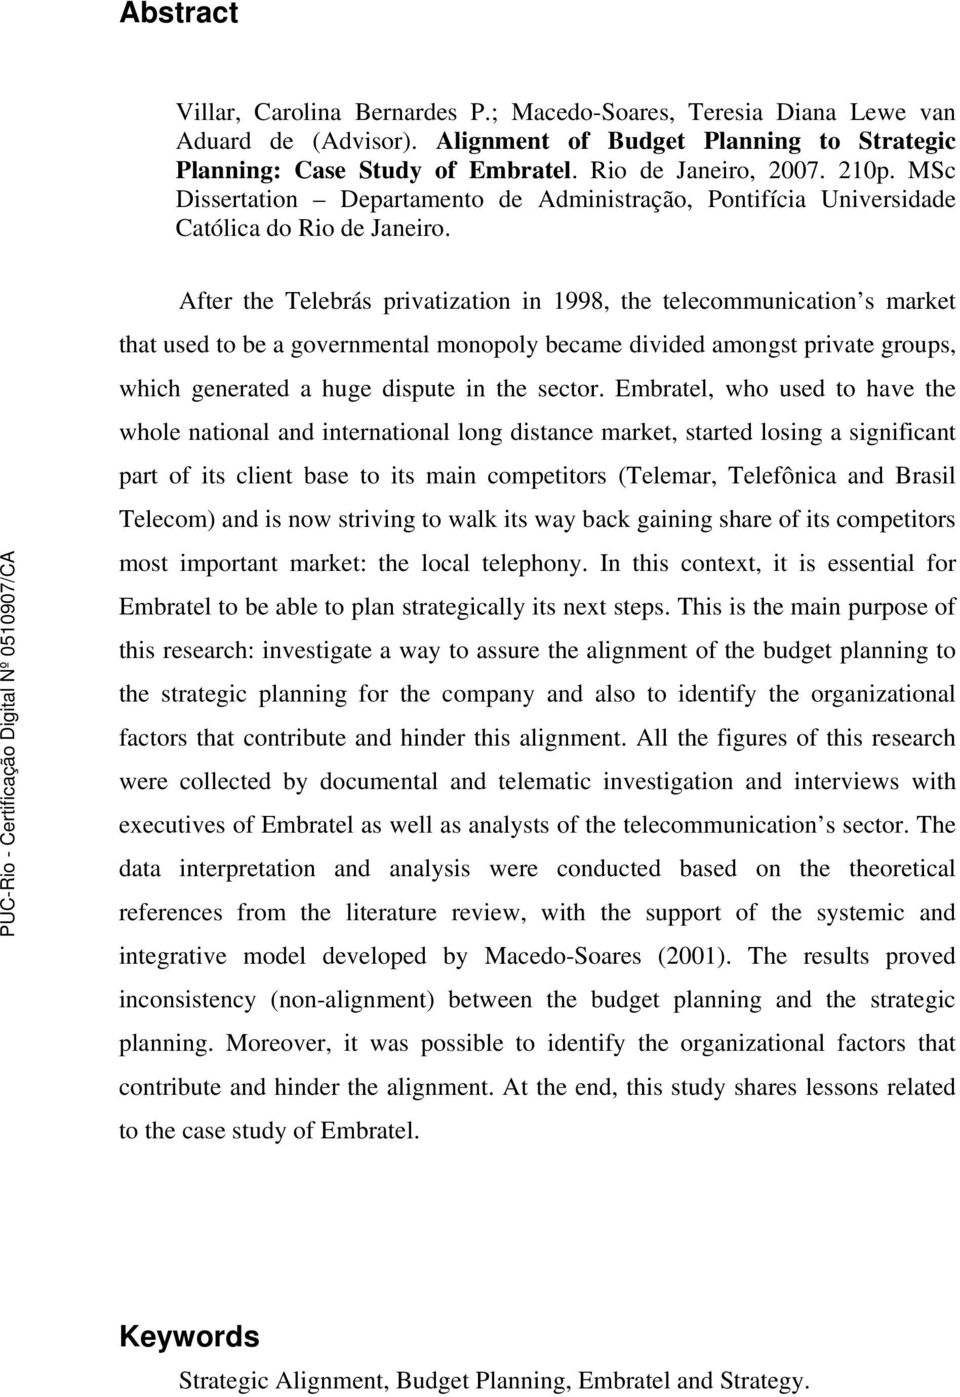 After the Telebrás privatization in 1998, the telecommunication s market that used to be a governmental monopoly became divided amongst private groups, which generated a huge dispute in the sector.